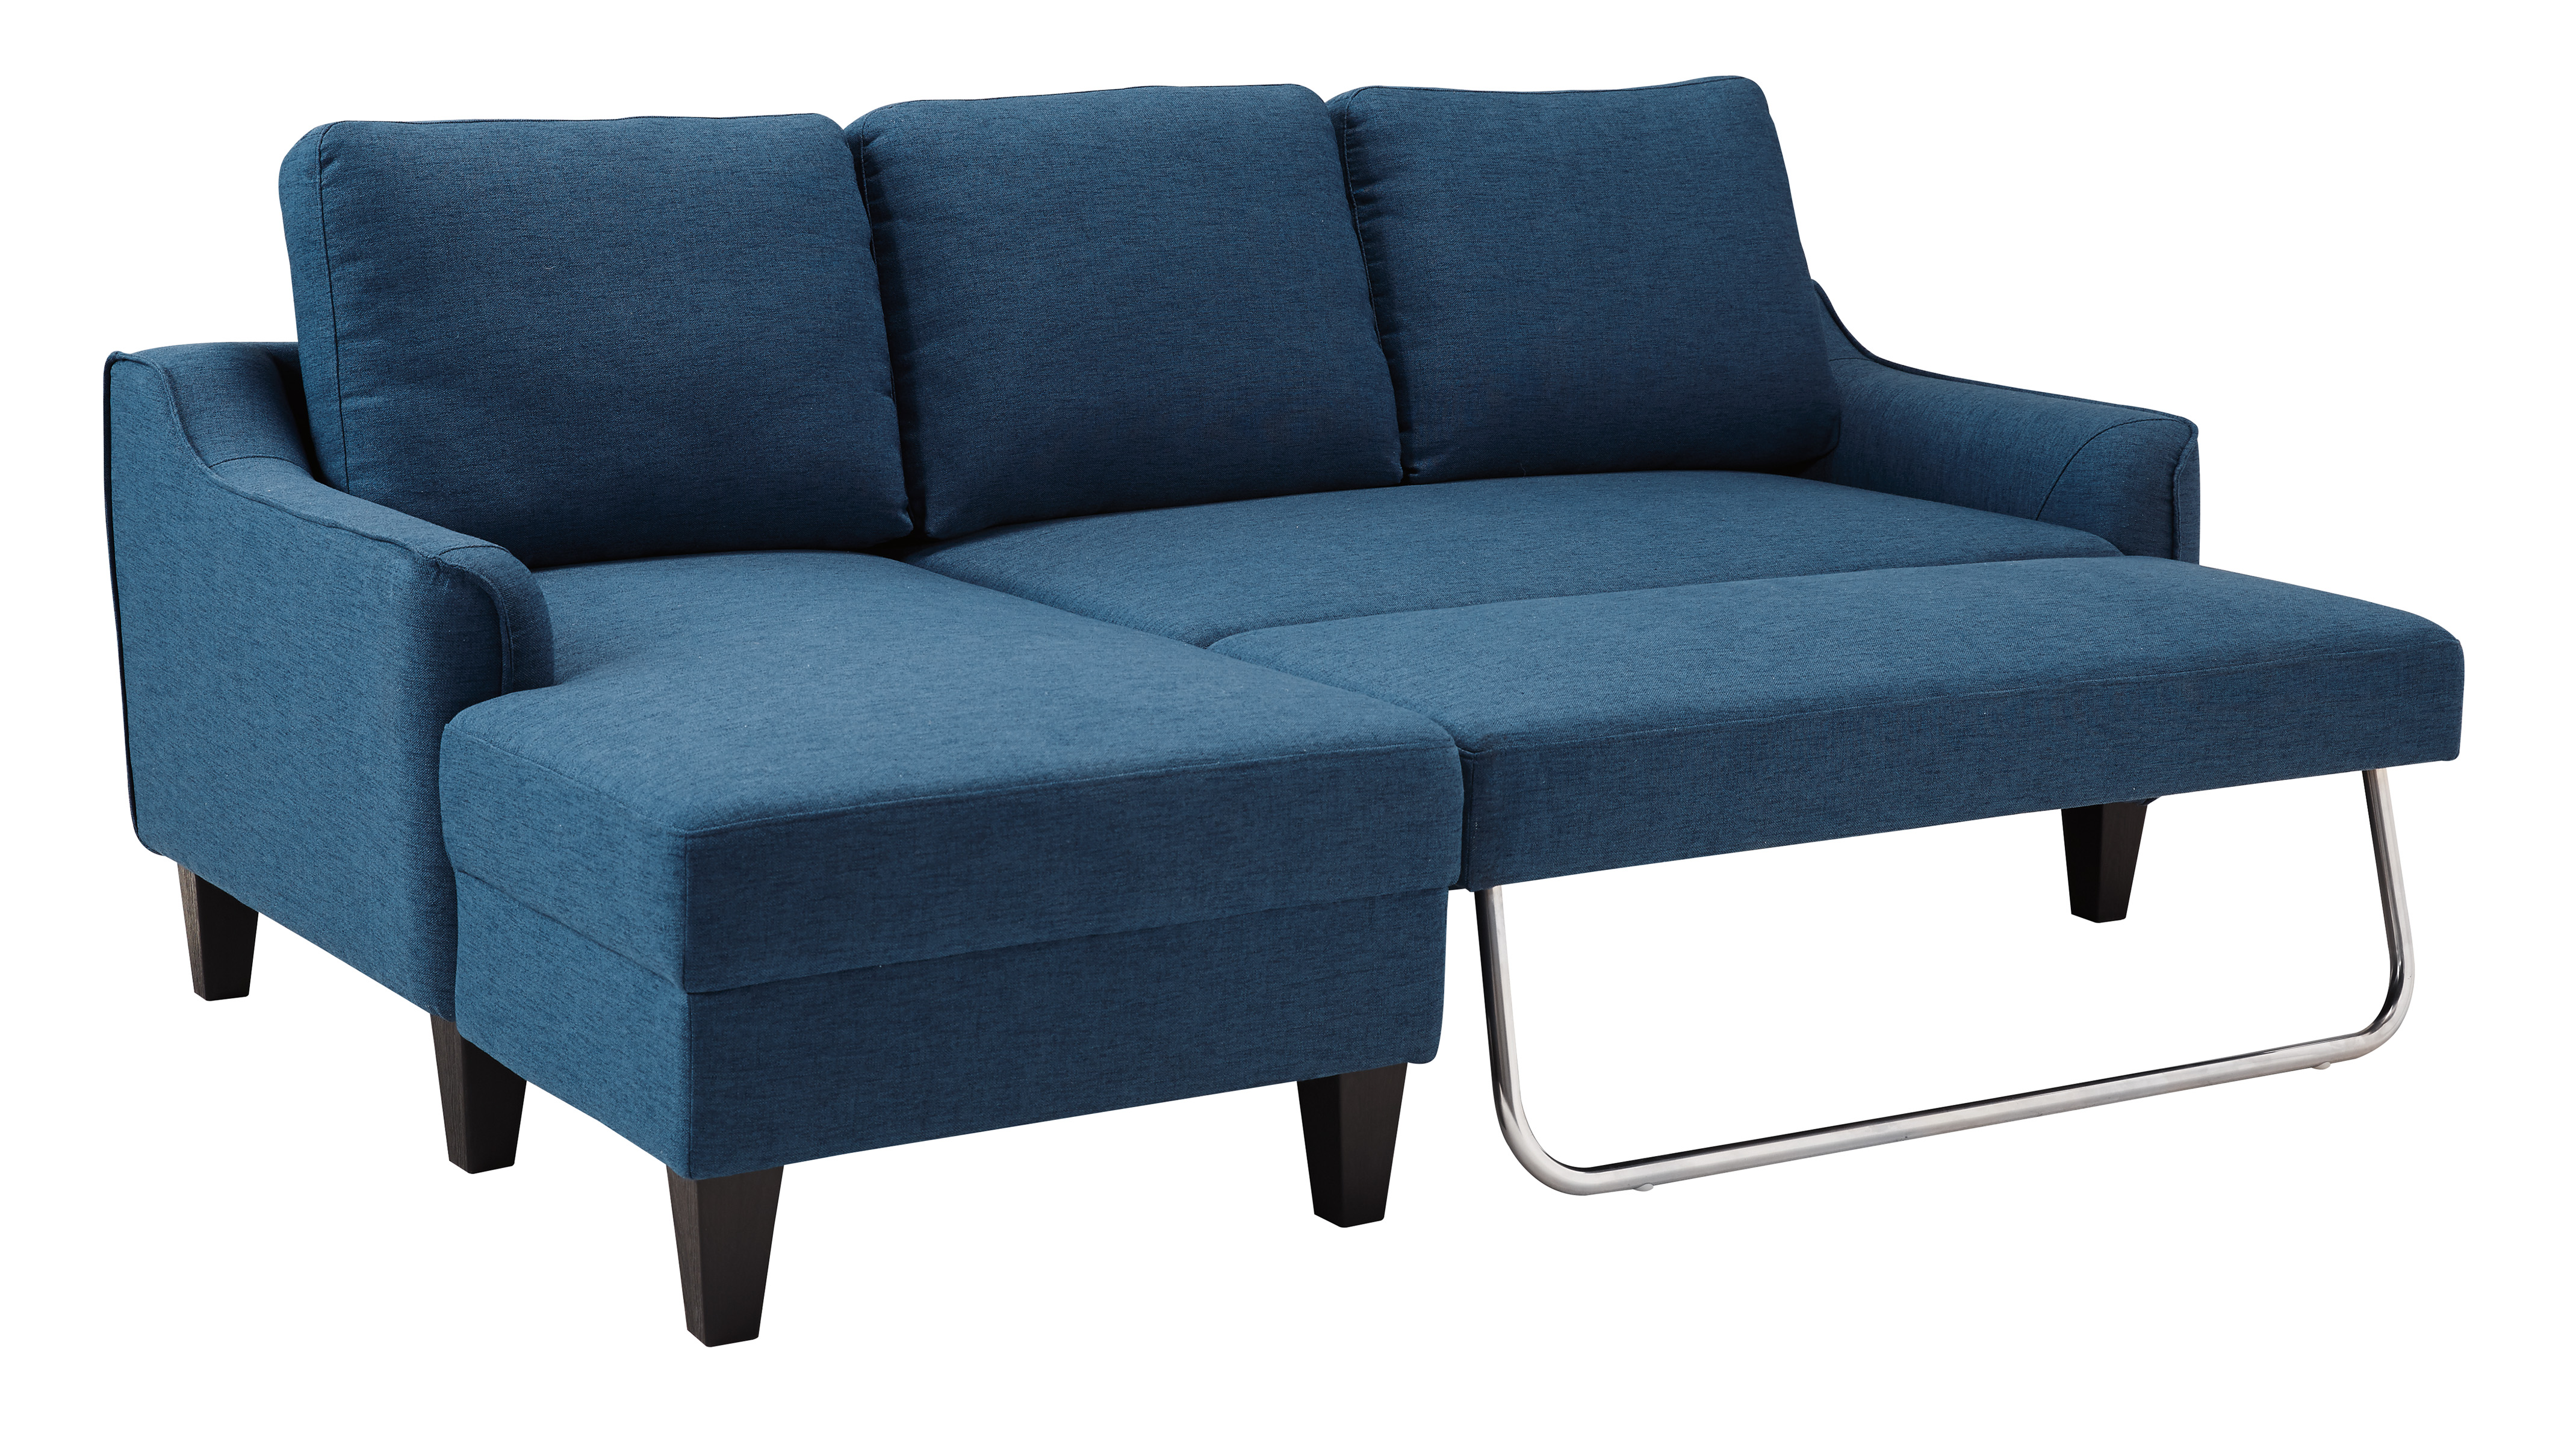 Small E Living Is Easier Than Ever With The Jarreau Queen Sofa Sleeper Soft Cushions And Oversized Pillow Backs Are Sure To Be A Comfortable